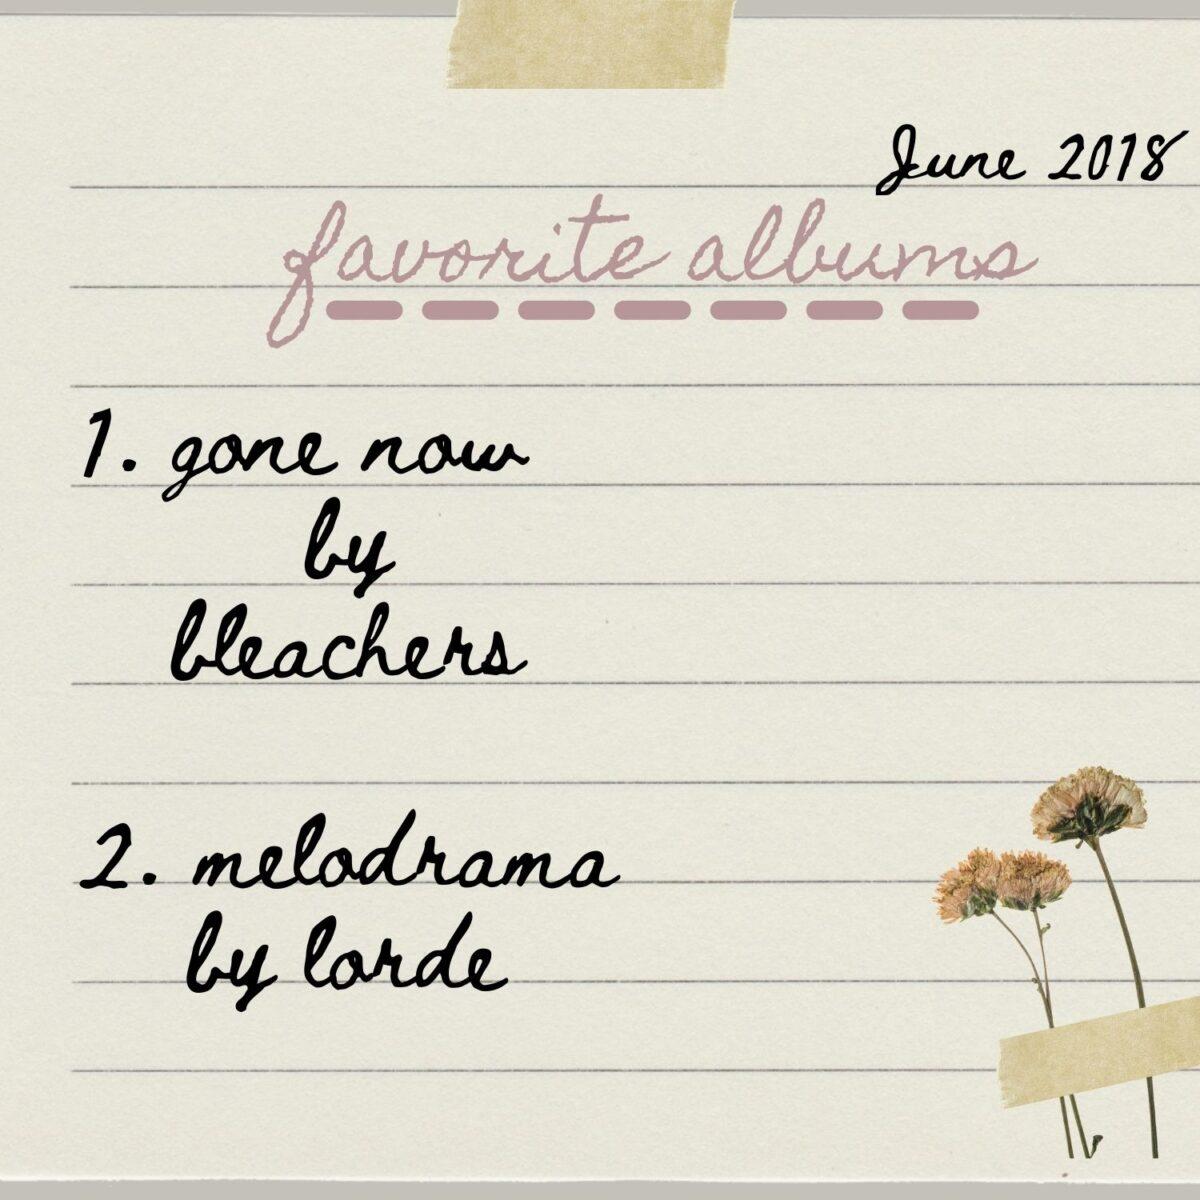 Favorite Albums, dated June 2018, 1. gone now by bleachers 2. melodrama by lorde